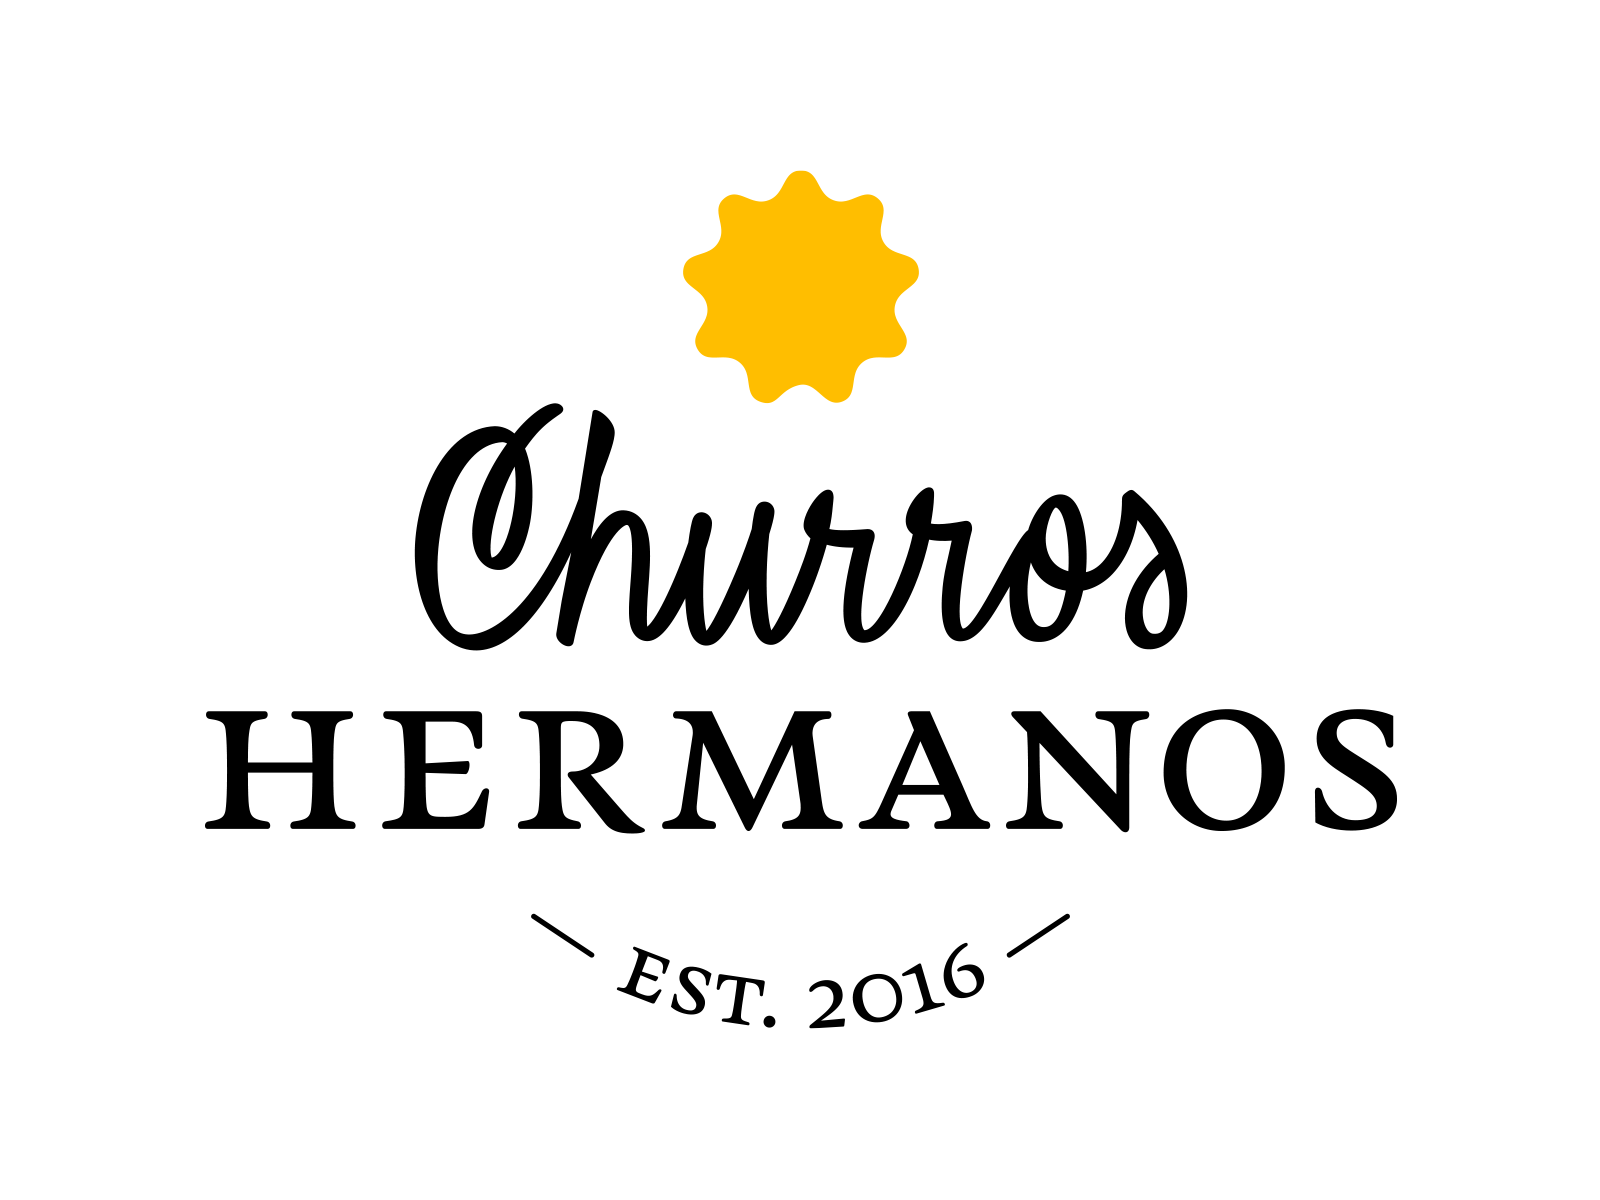 churroshermanos